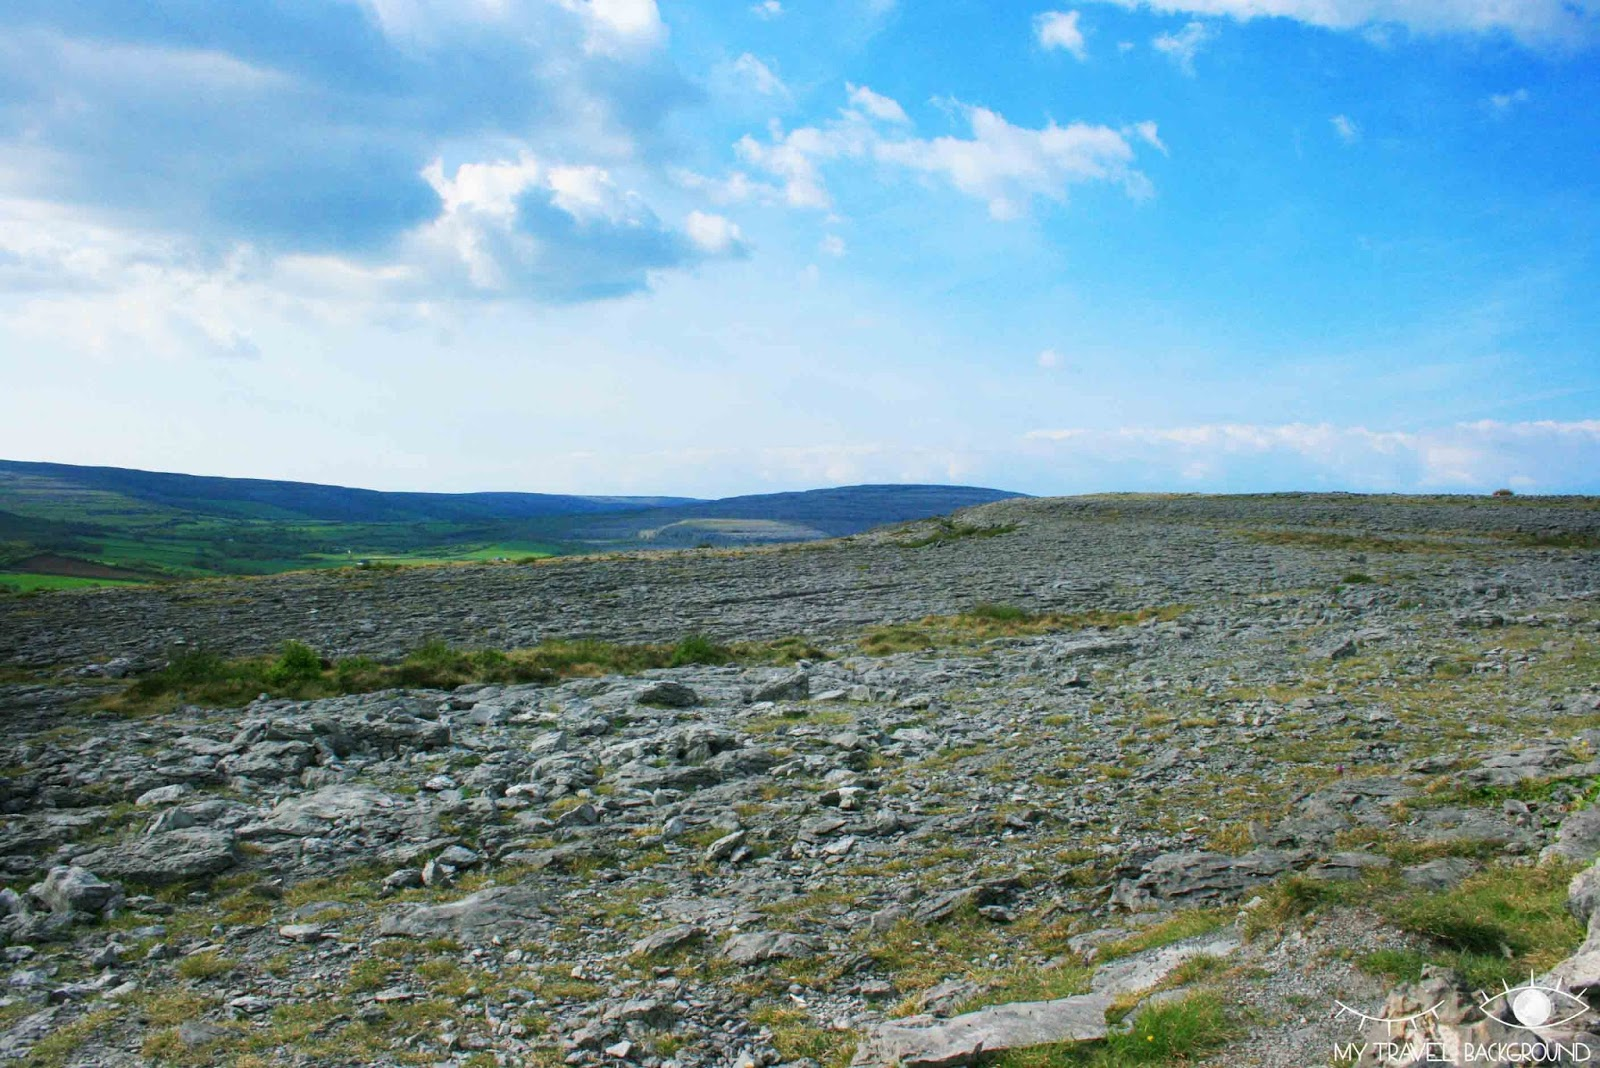 My Travel Background : le Plateau de Burren